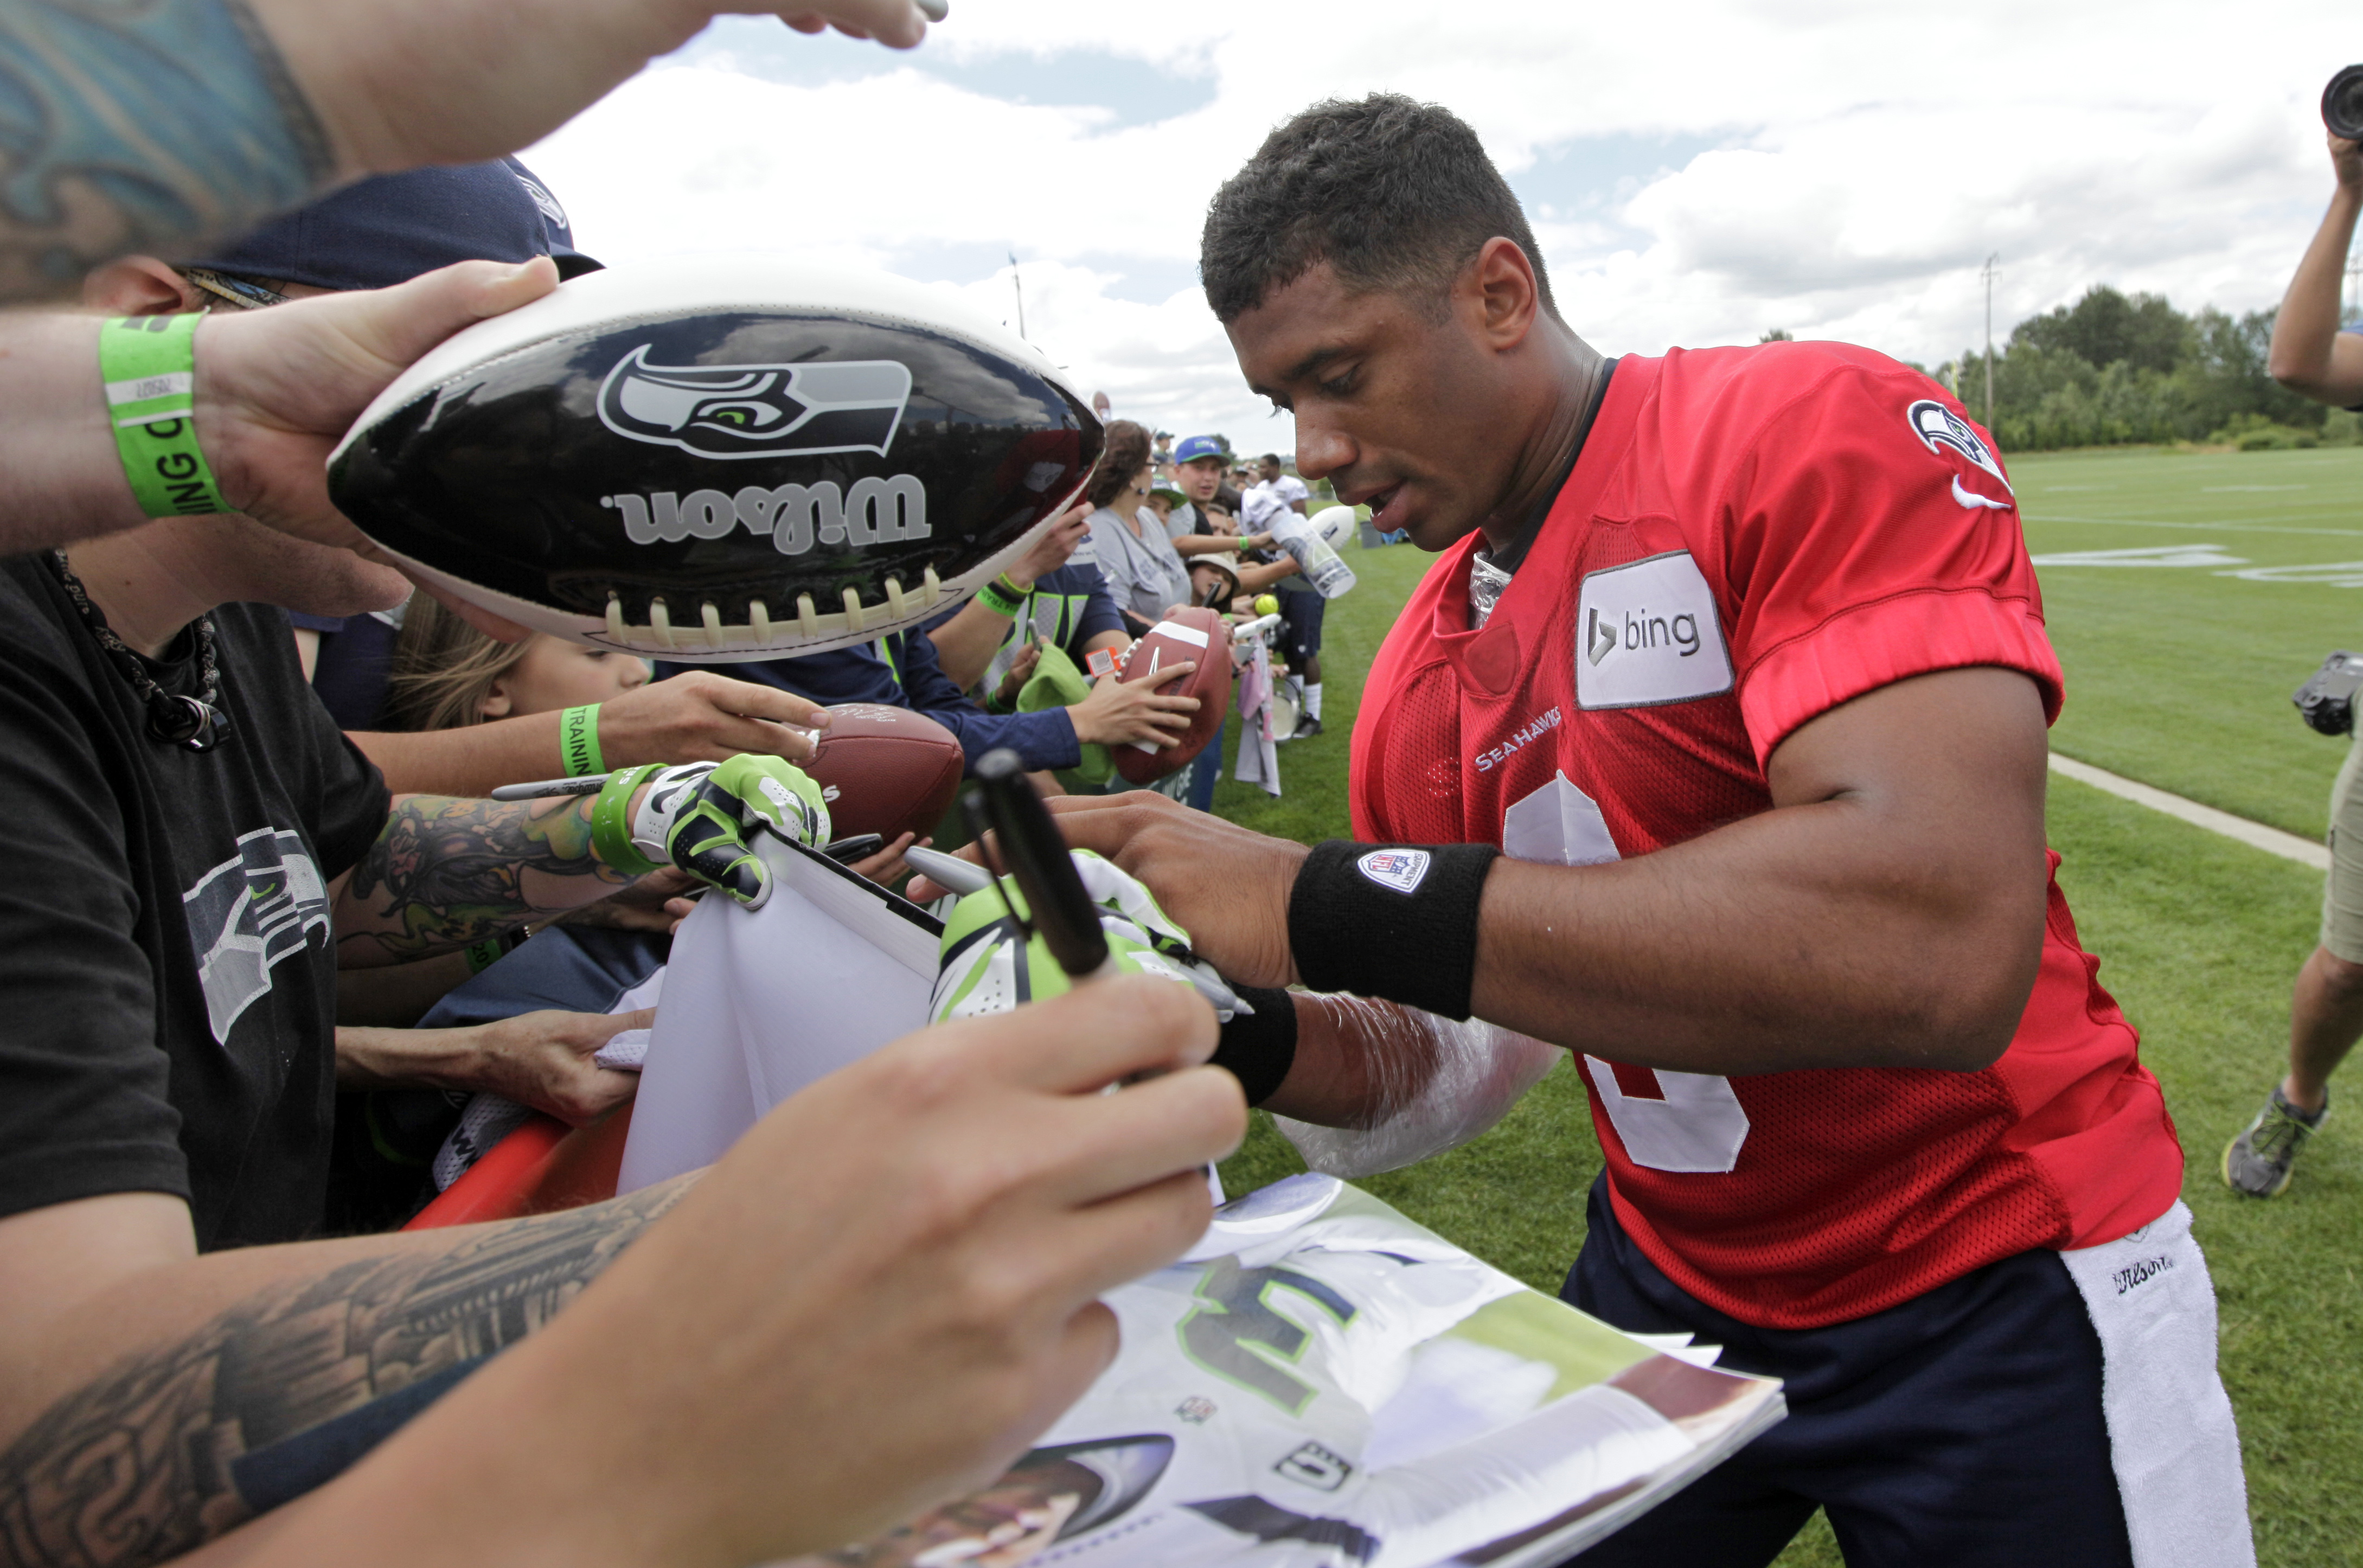 FILE - In this July 25, 2014, file photo, Seattle Seahawks quarterback Russell Wilson signs autographs following an NFL football camp practice in Renton, Wash. Wilson was taken in the third round of the 2012 Draft. He already has a Super Bowl ring. (AP Ph